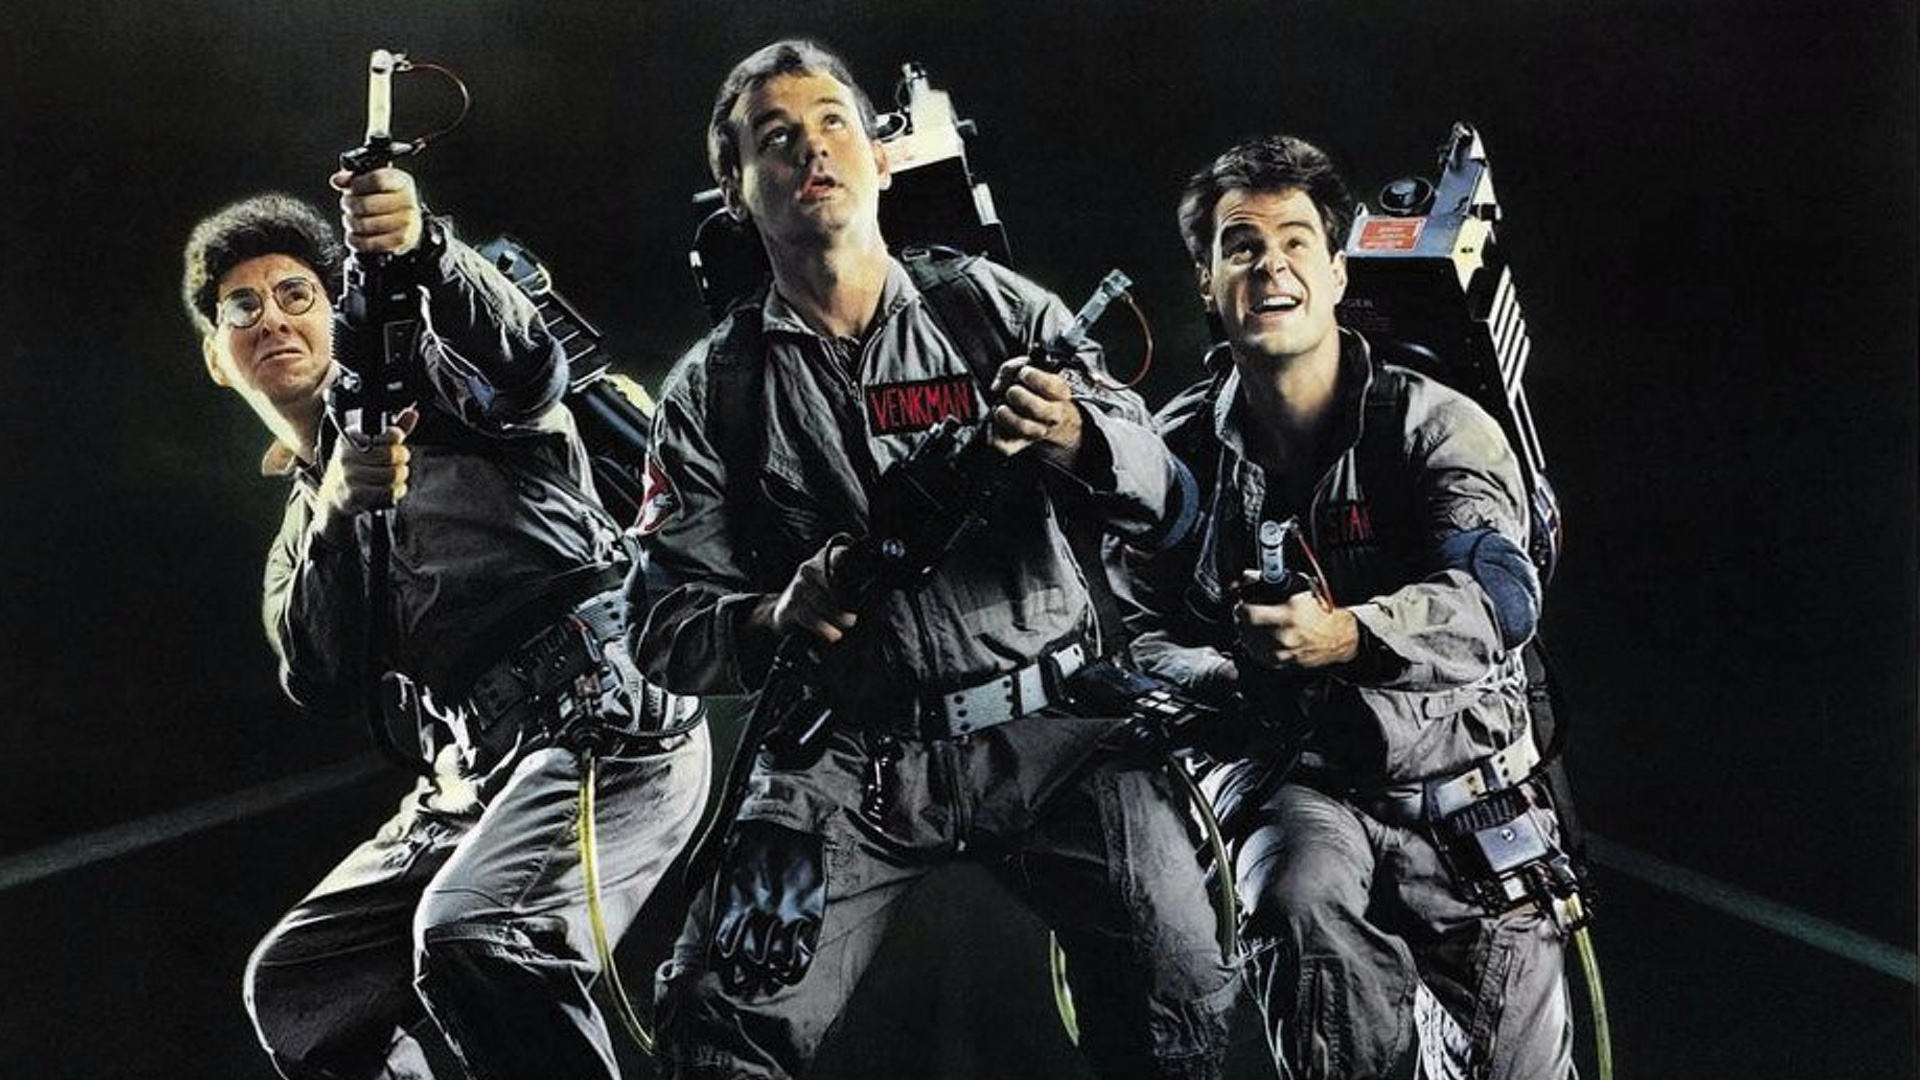 a-new-ghostbusters-sequel-set-in-the-original-universe-is-being-directed-by-jason-reitman-social.jpg